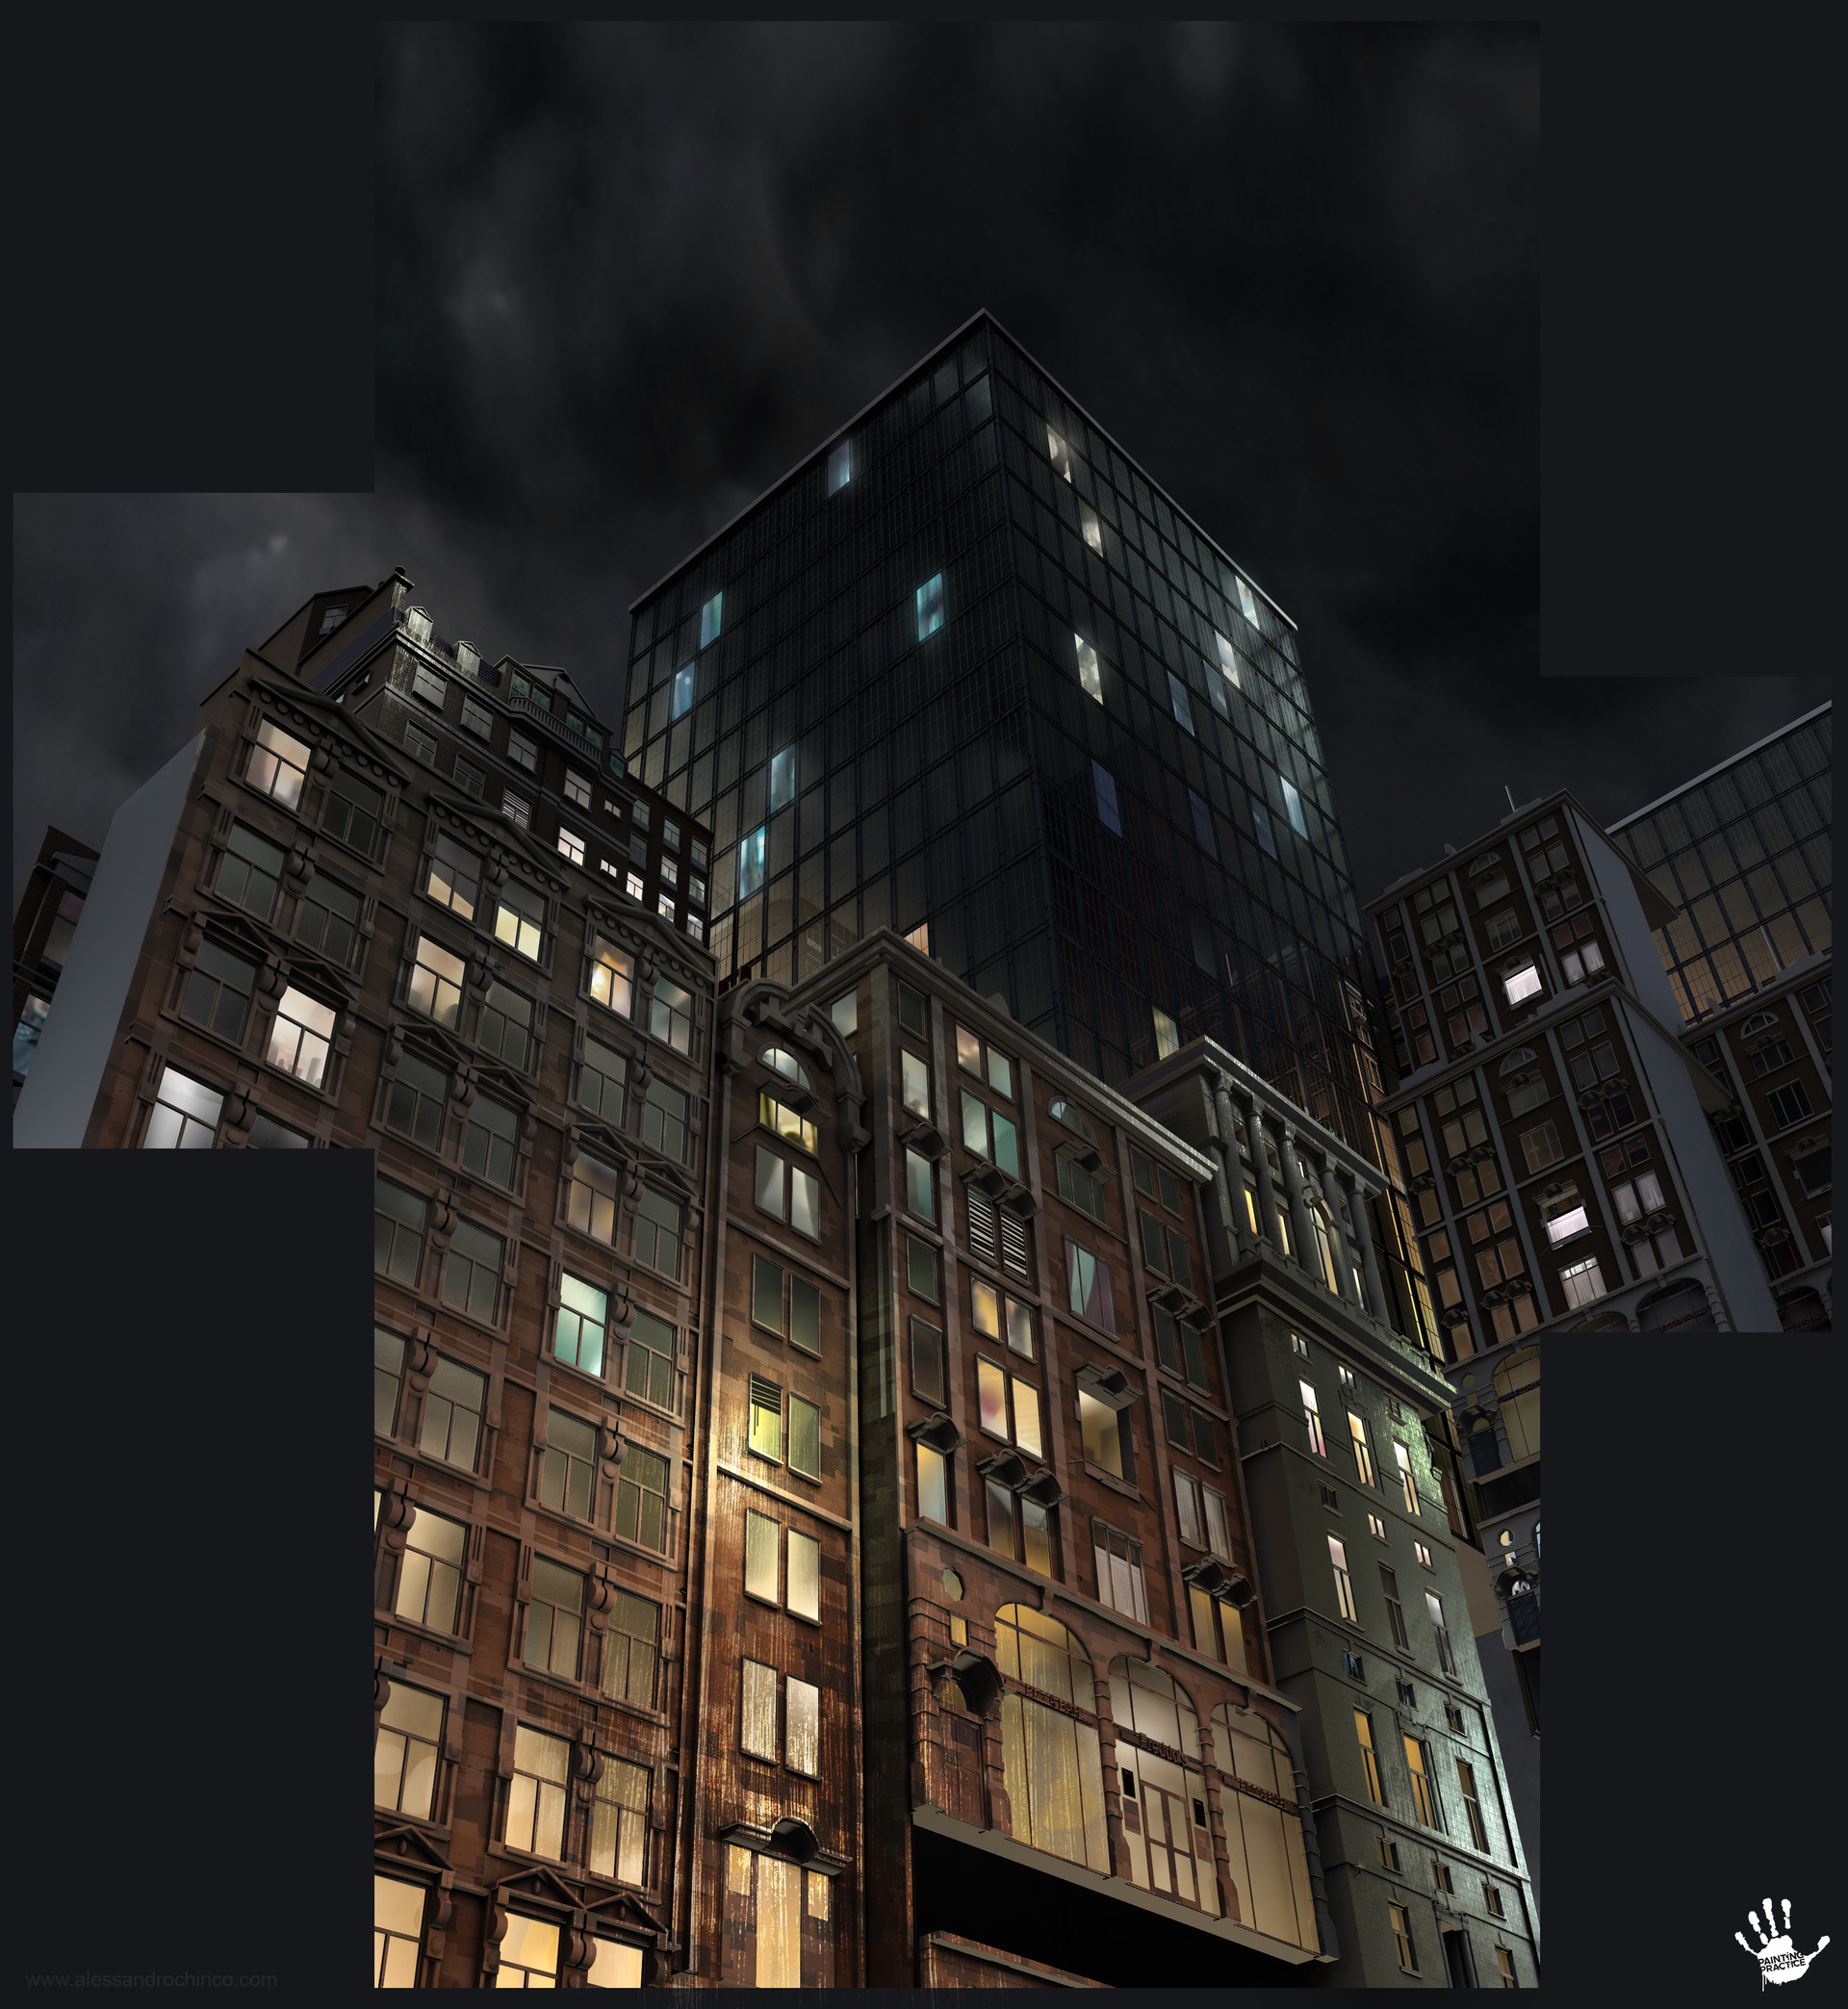 Matte painting for one of the locations.